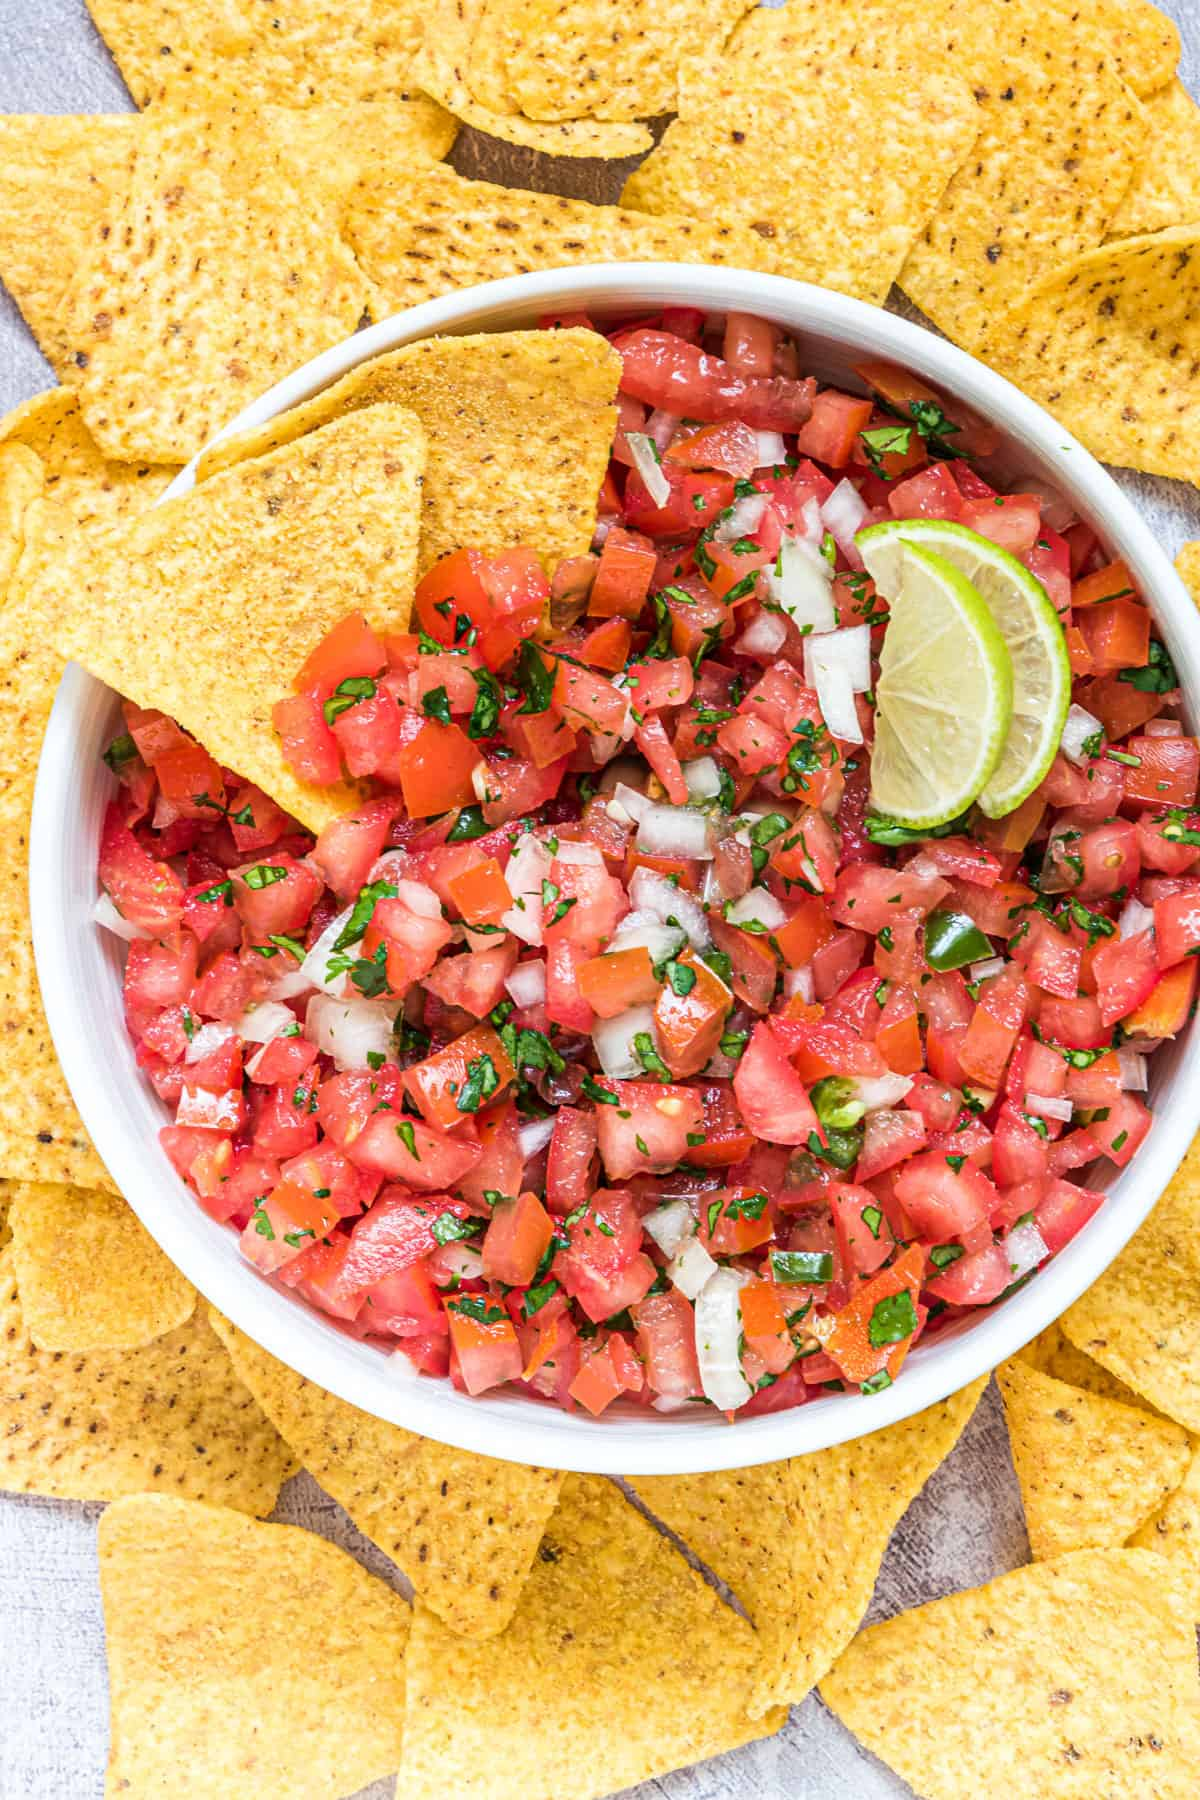 the completed Chipotle salsa recipe served in a white bowl with lime wedges and tortilla chips